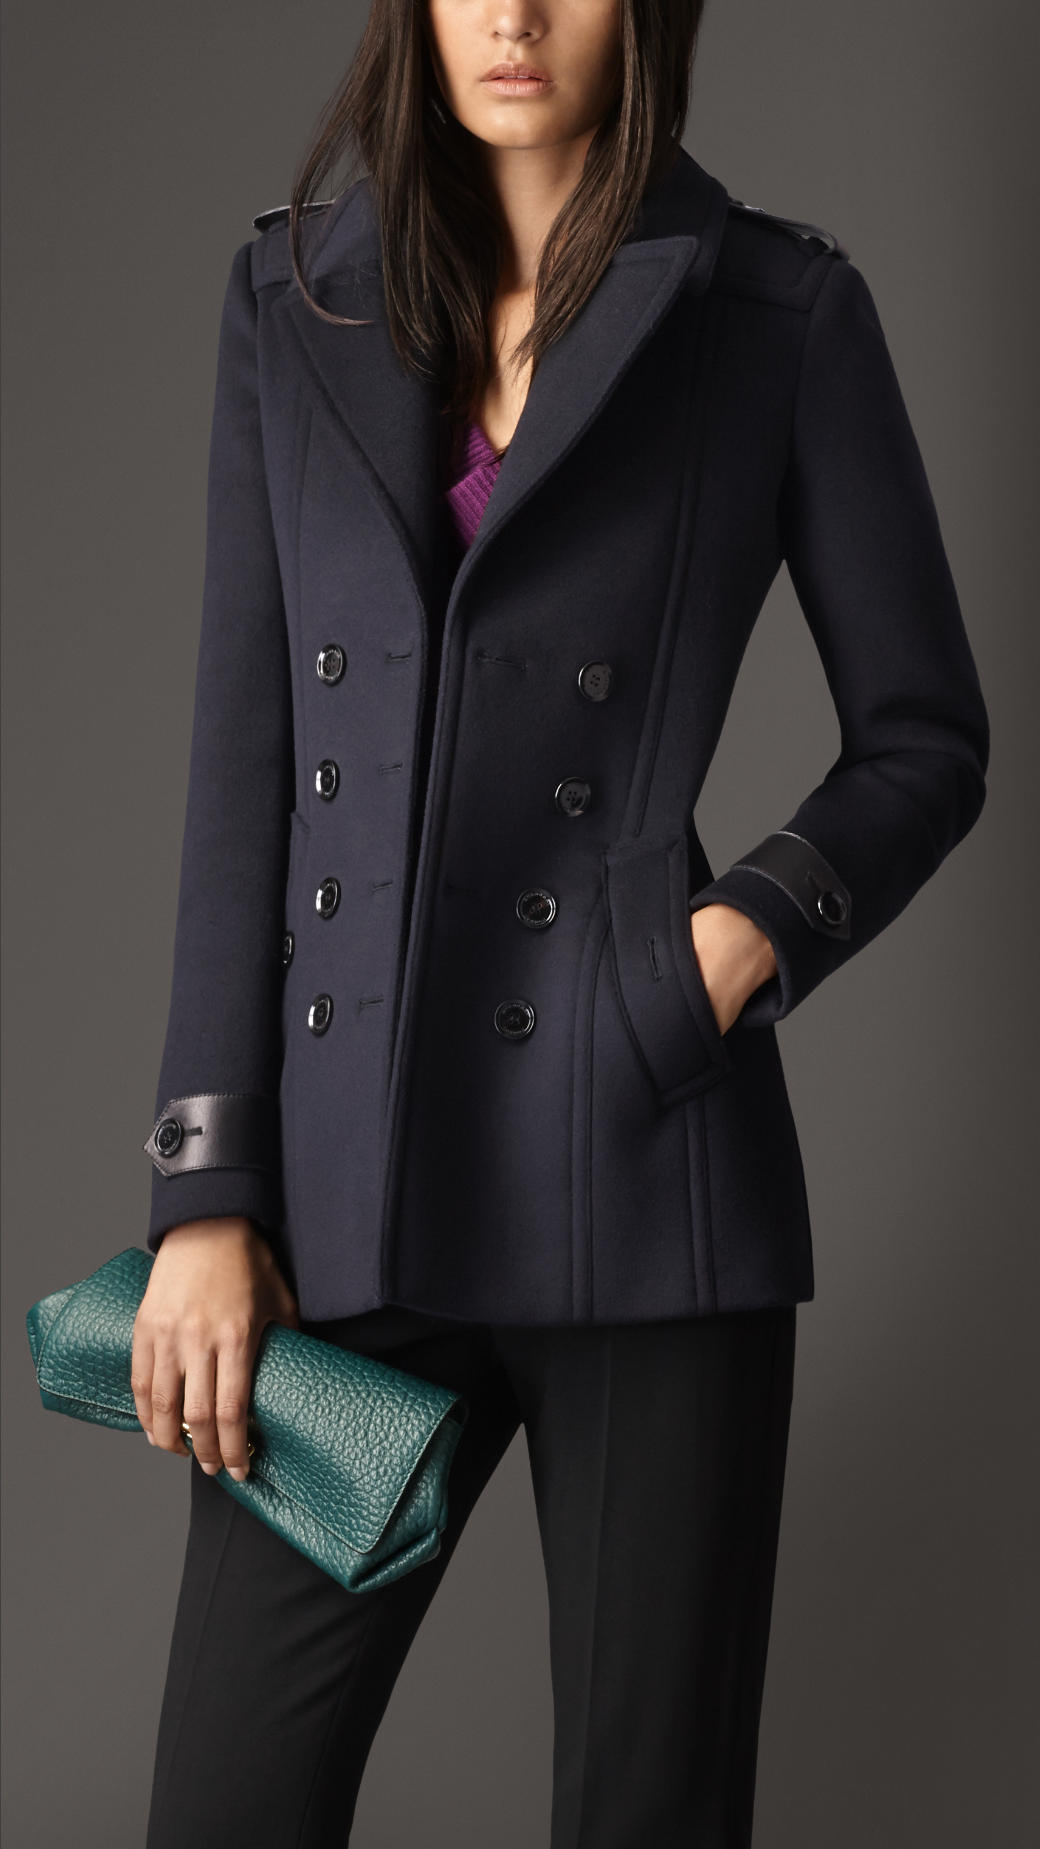 Burberry Tailored Wool Cashmere Pea Coat in Blue | Lyst